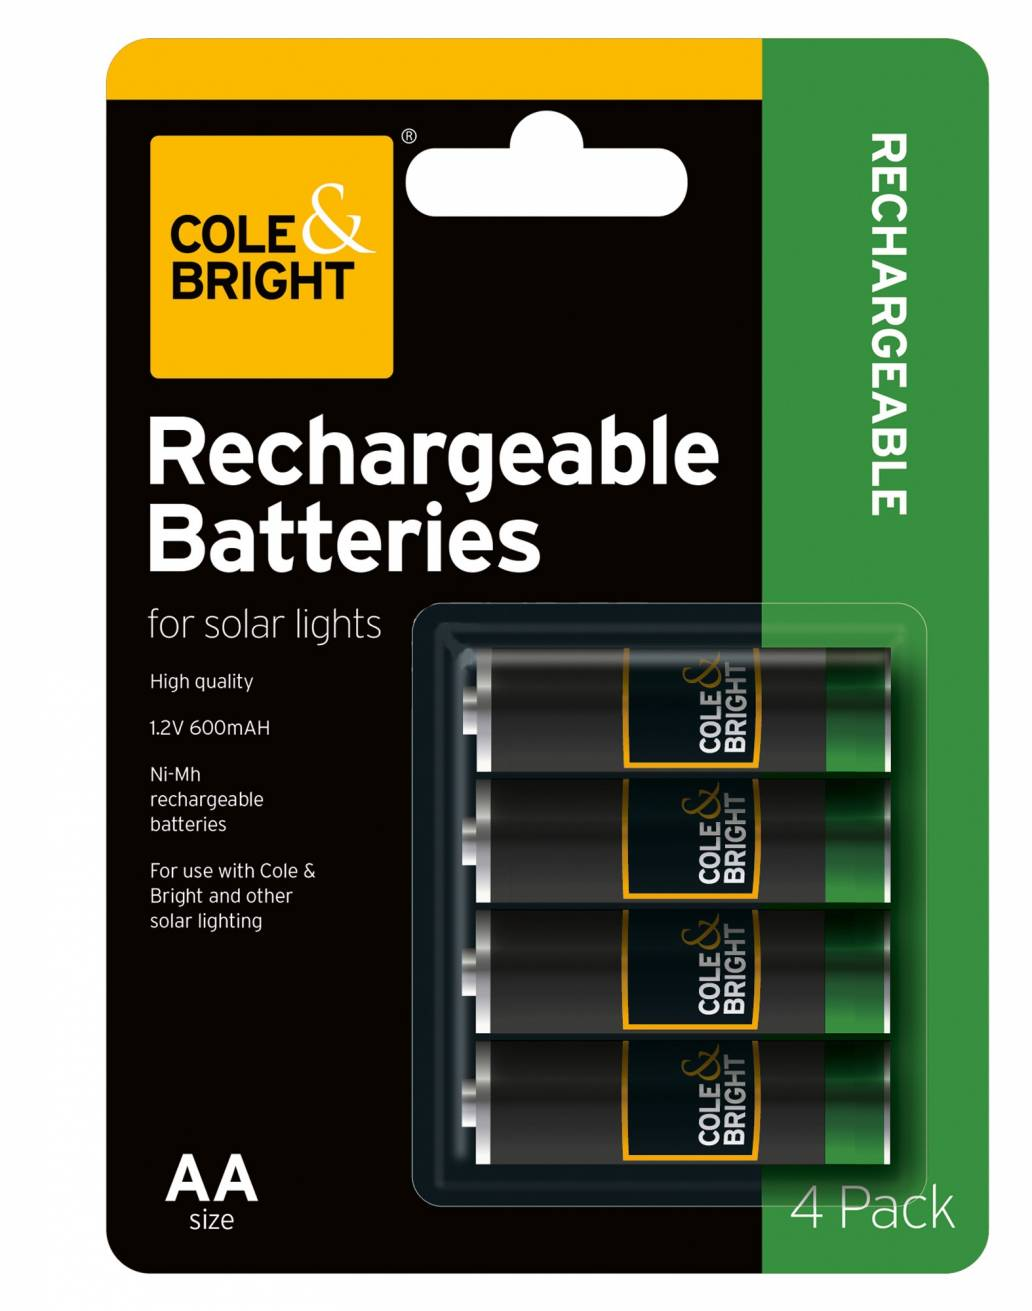 Cole & Bright AA Rechargeable Battery - 4 pack